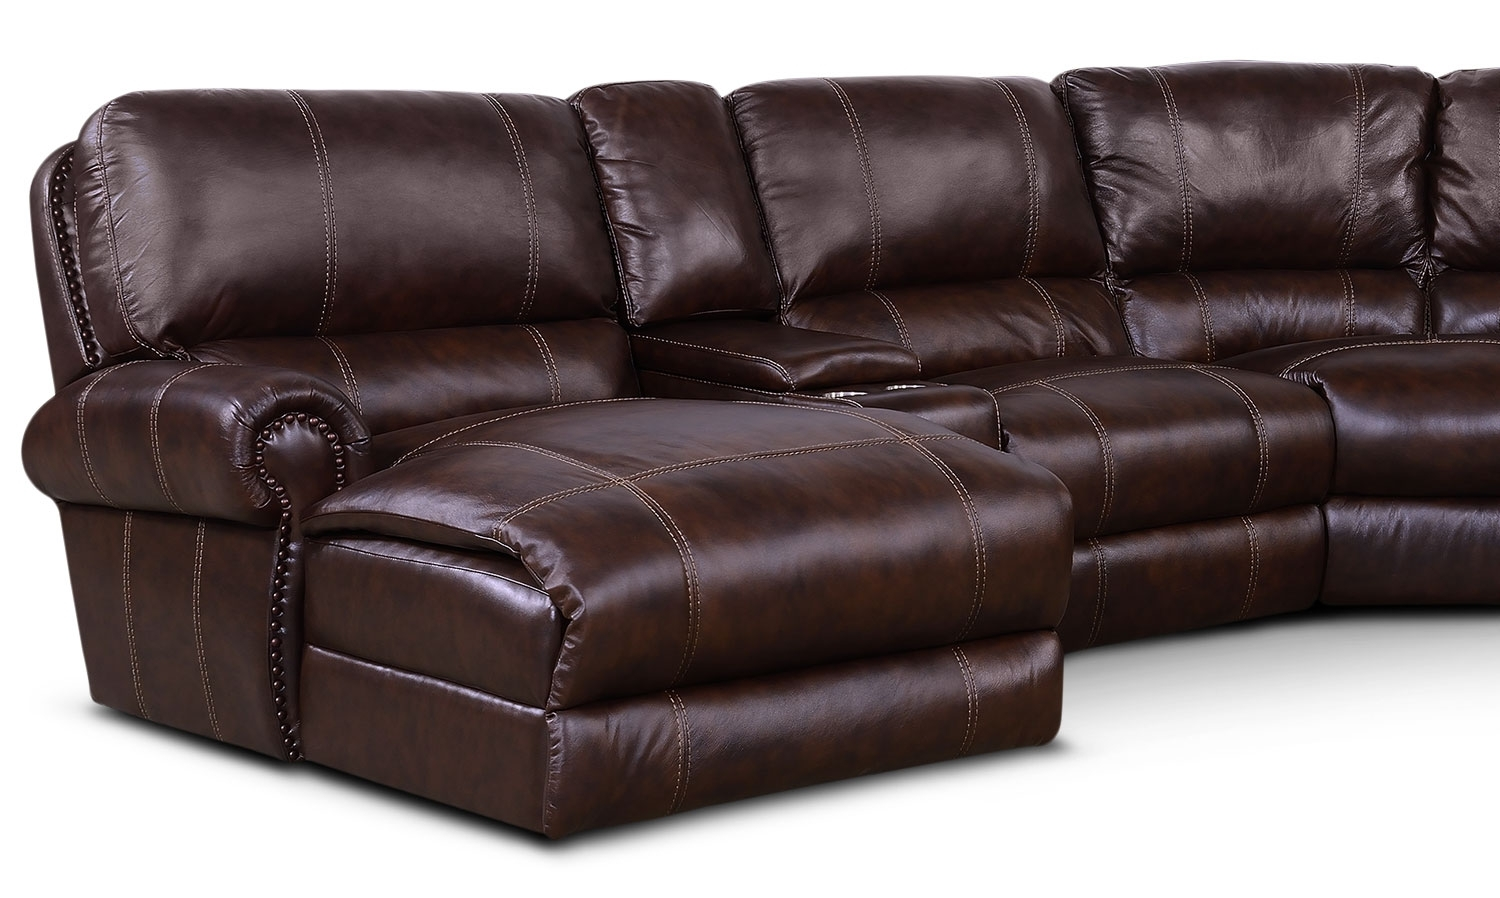 Dartmouth 6-Piece Power Reclining Sectional W/ Left-Facing Chaise with Norfolk Chocolate 6 Piece Sectionals With Raf Chaise (Image 9 of 30)